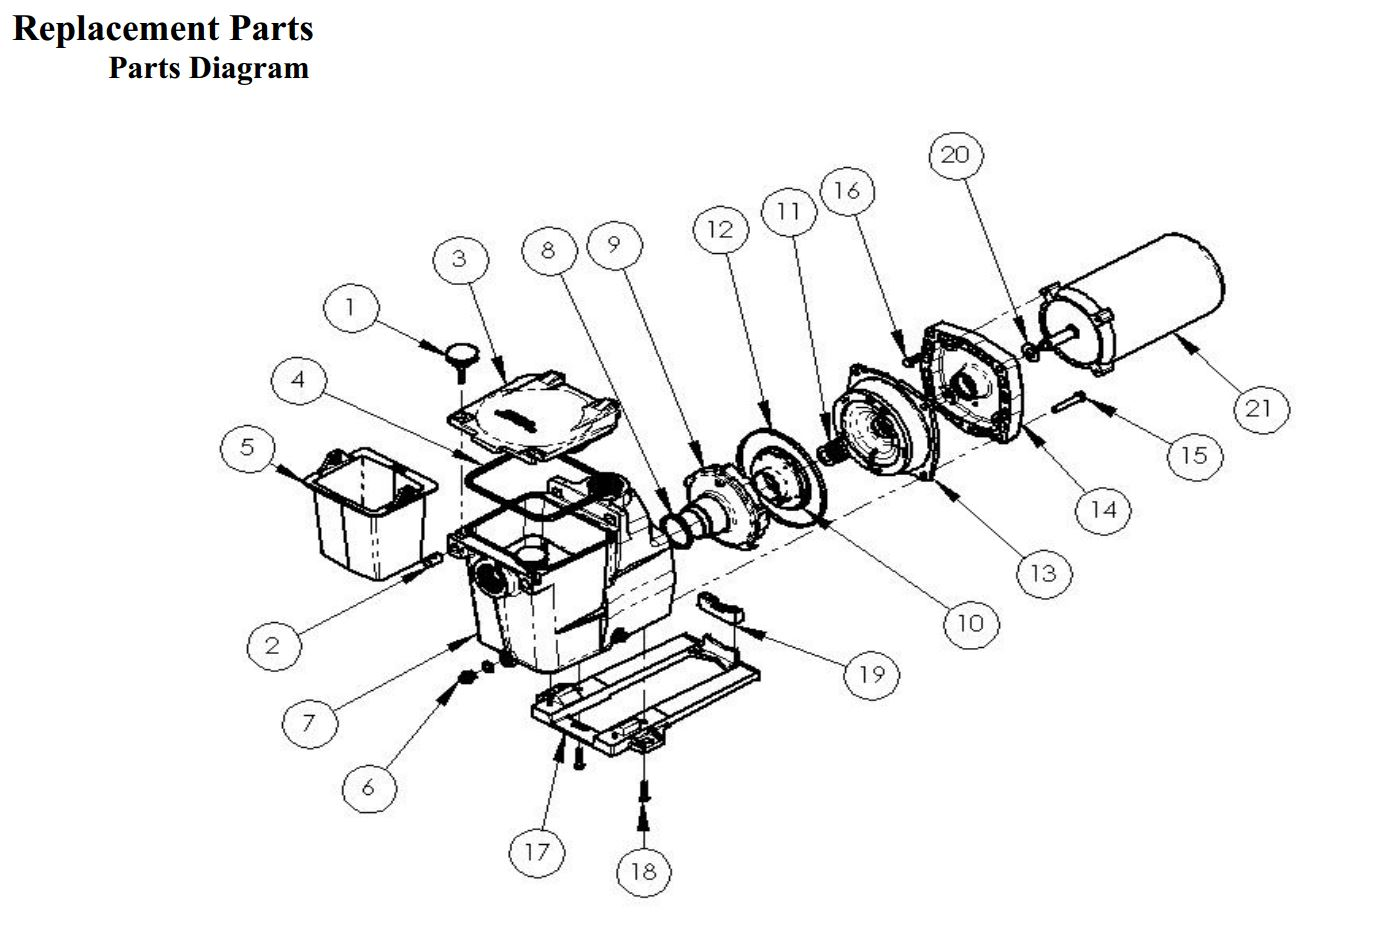 Hayward_Pump_ReplacementParts_WireDiagram._V359521762_ amazon com hayward sp2610x15 super pump 1 5 hp pool pump